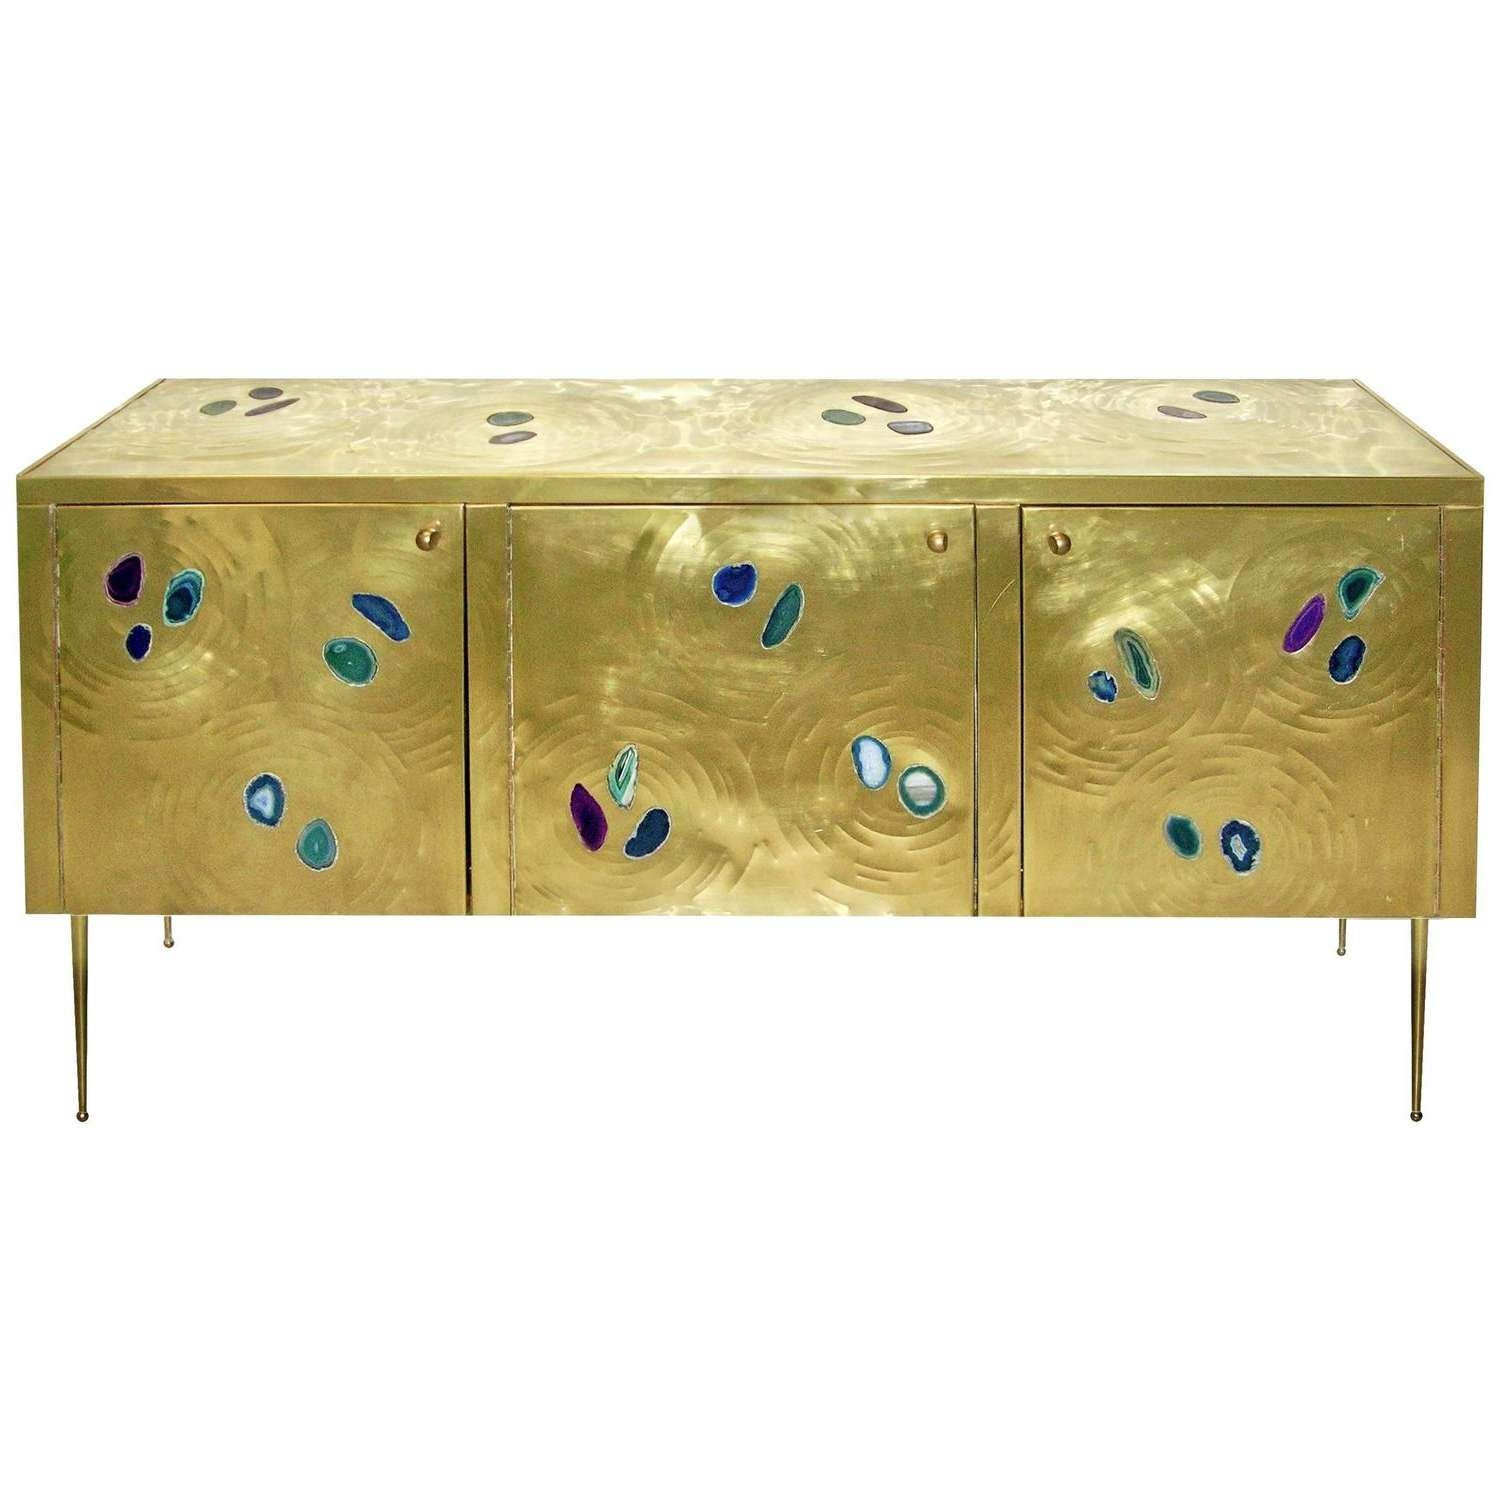 Modern Sideboards – 190 For Sale At 1Stdibs With Regard To Green Sideboards (View 8 of 20)